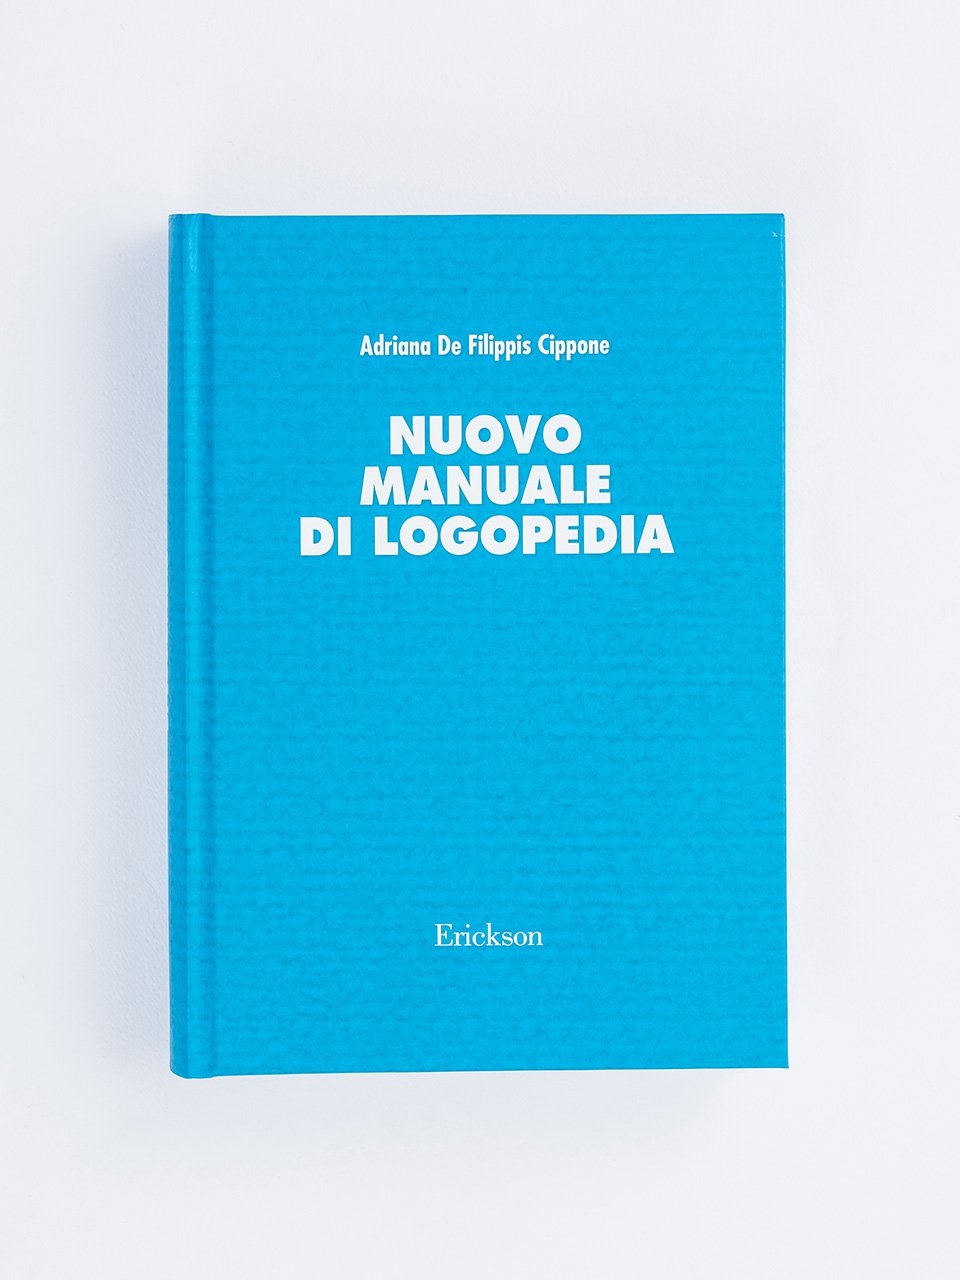 Nuovo manuale di logopedia - Le coppie minime - Volume 2 - Libri - App e software - Erickson